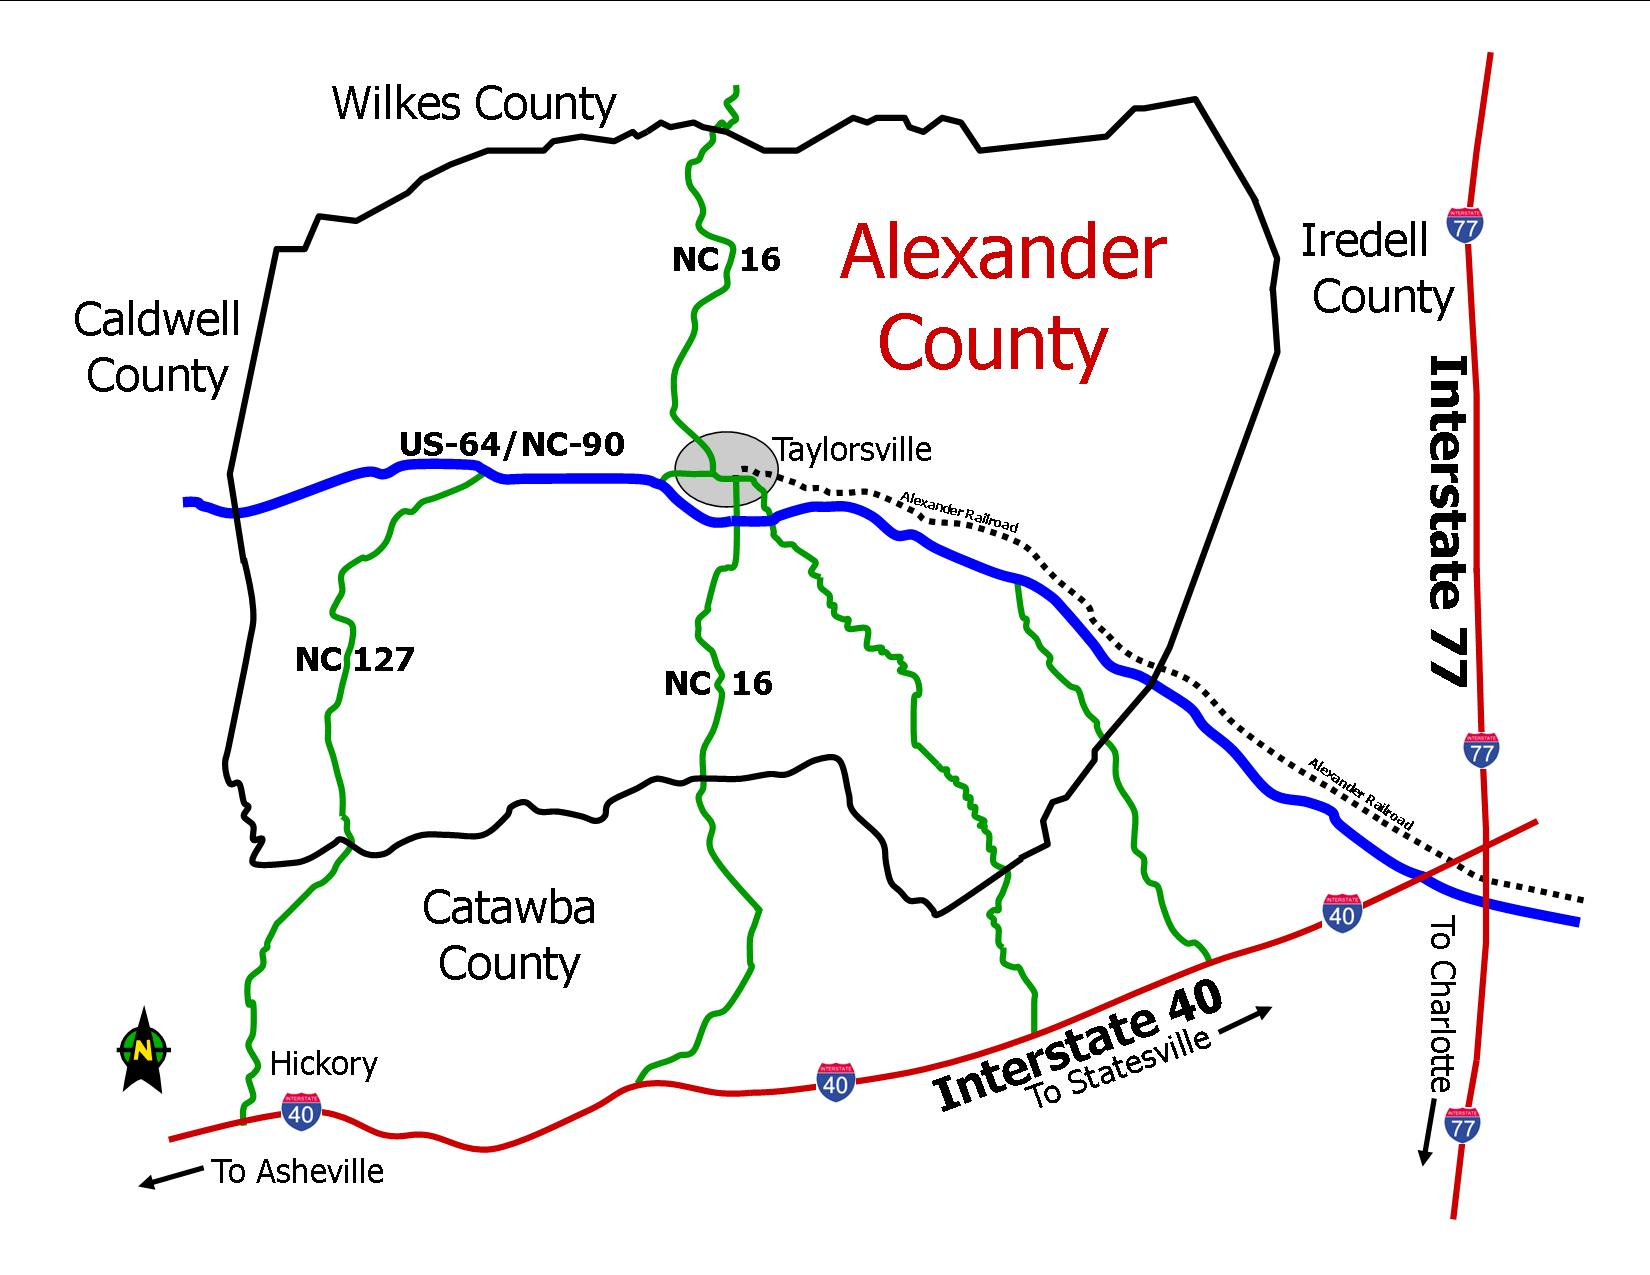 Where is Alexander County?